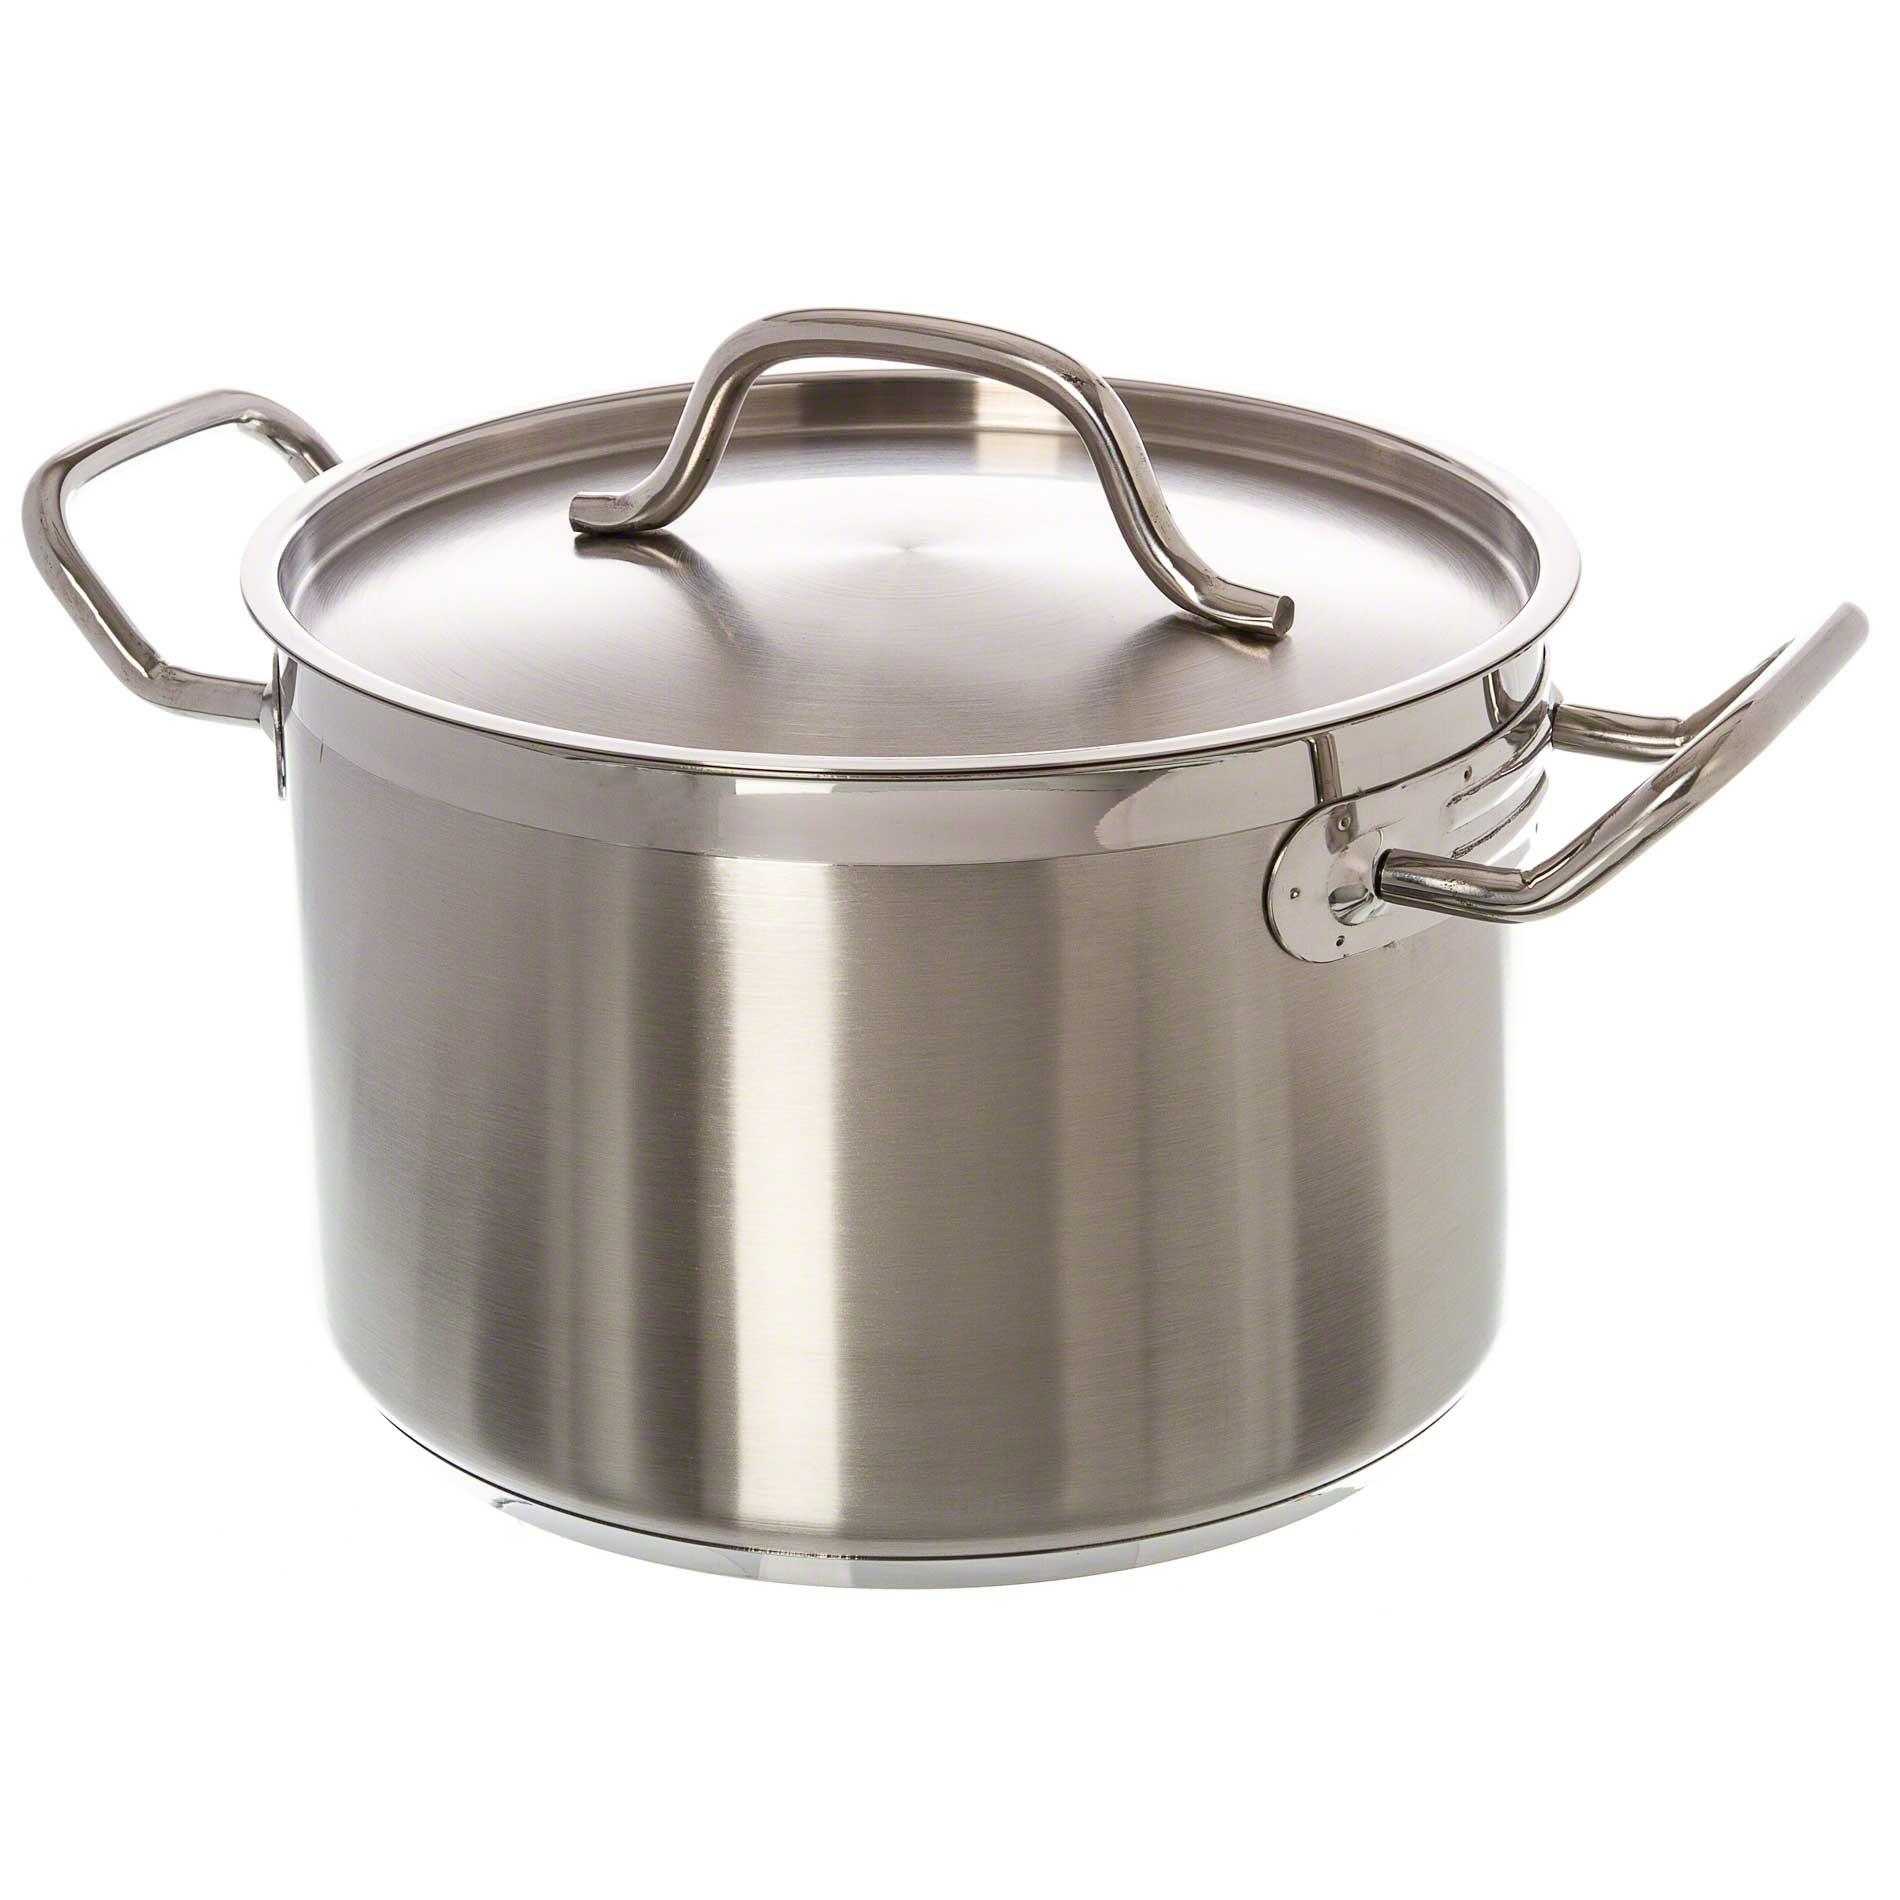 Thunder Group Slsps008 Stainless Steel Stock Pot